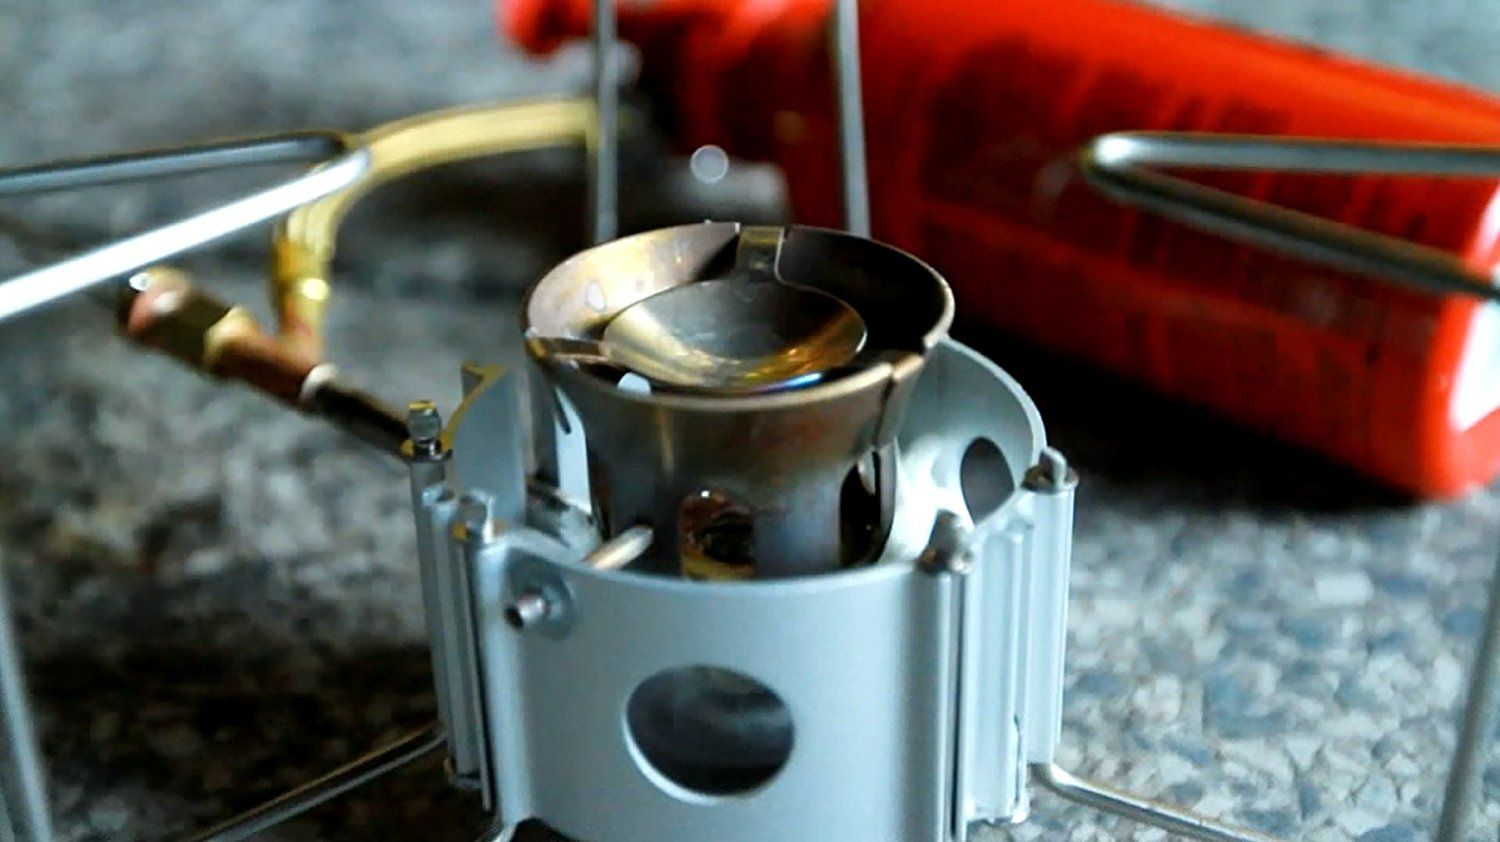 MSR DragonFly Stove | Camping Cookware | Multi fuel stove